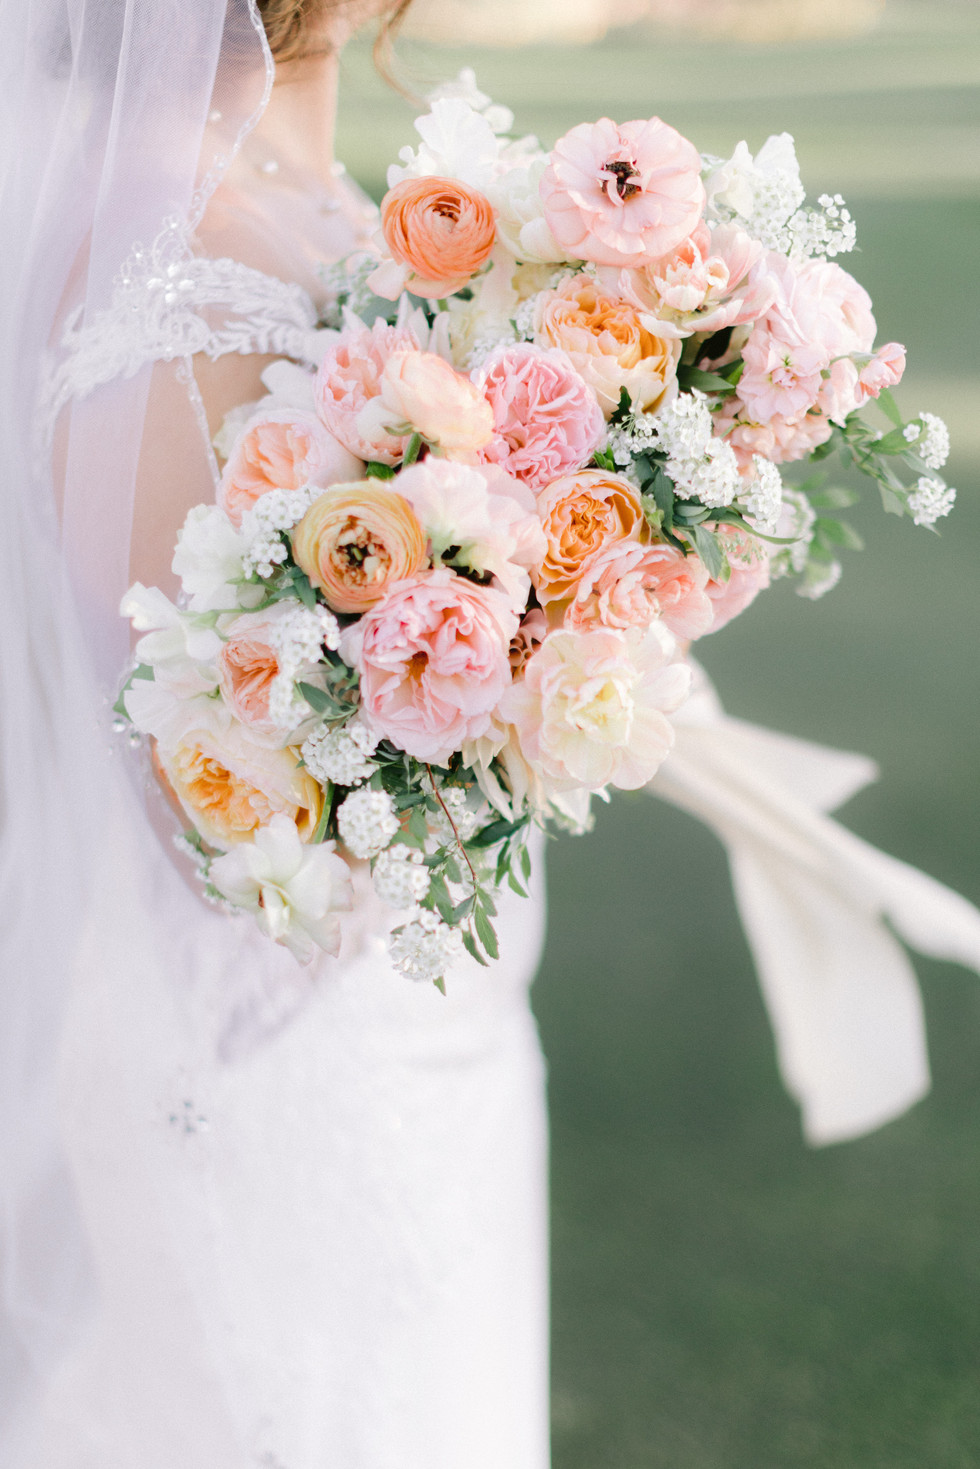 Spring bouquet with garden roses, ranunculus, and sweet pea, in shades of peach and pink. Photo: Susie and Will